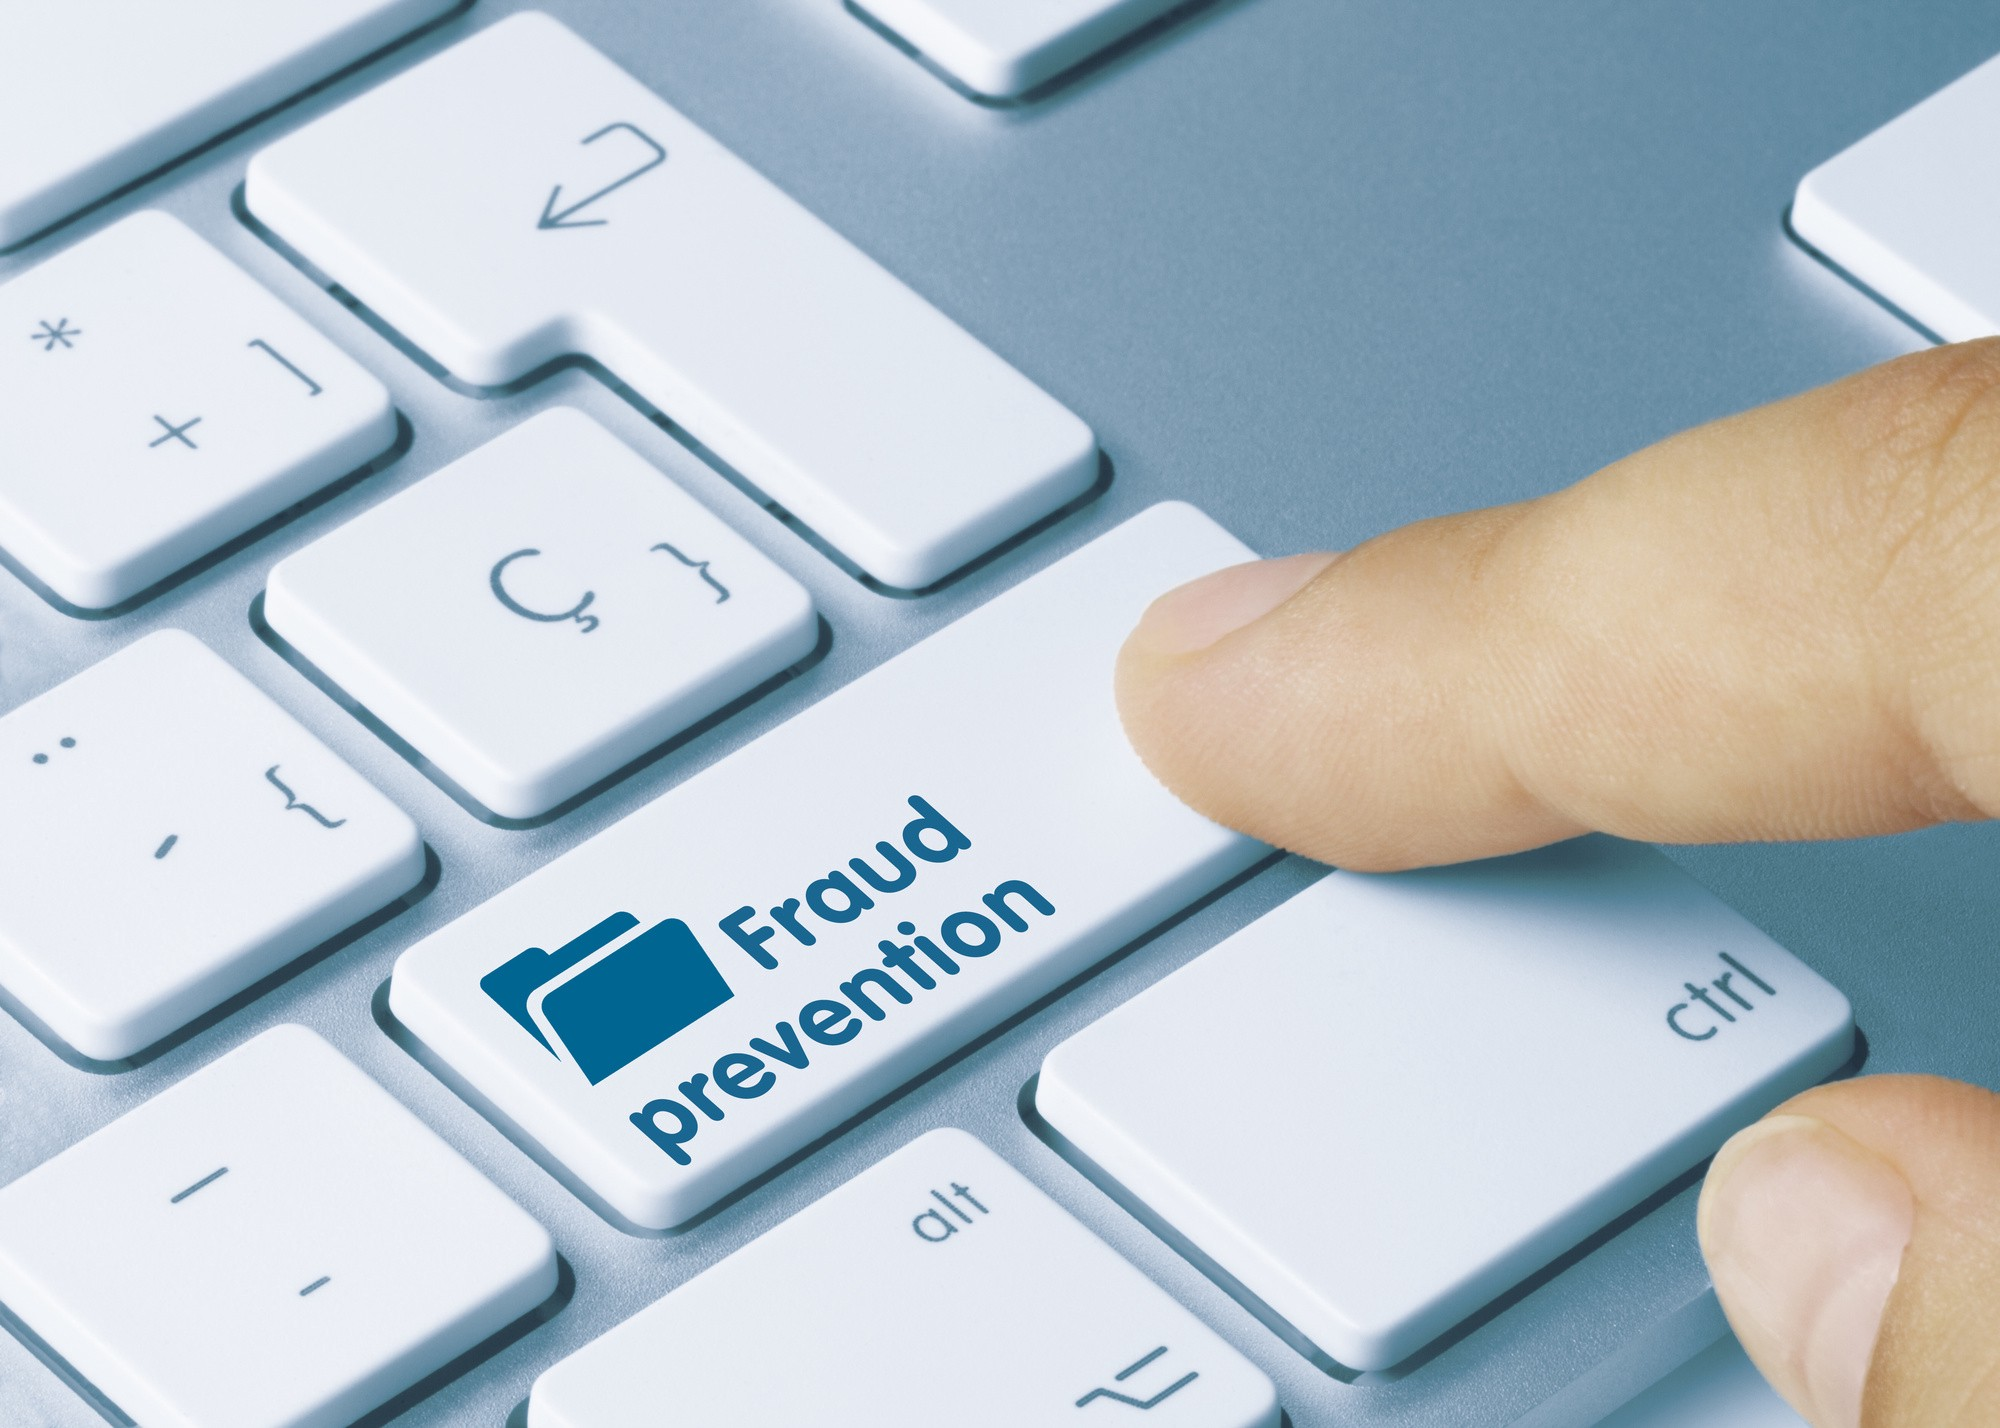 Top 4 Amazing Fraud Prevention Tools to fight Online Scams/frauds by Oliver Smith Medium